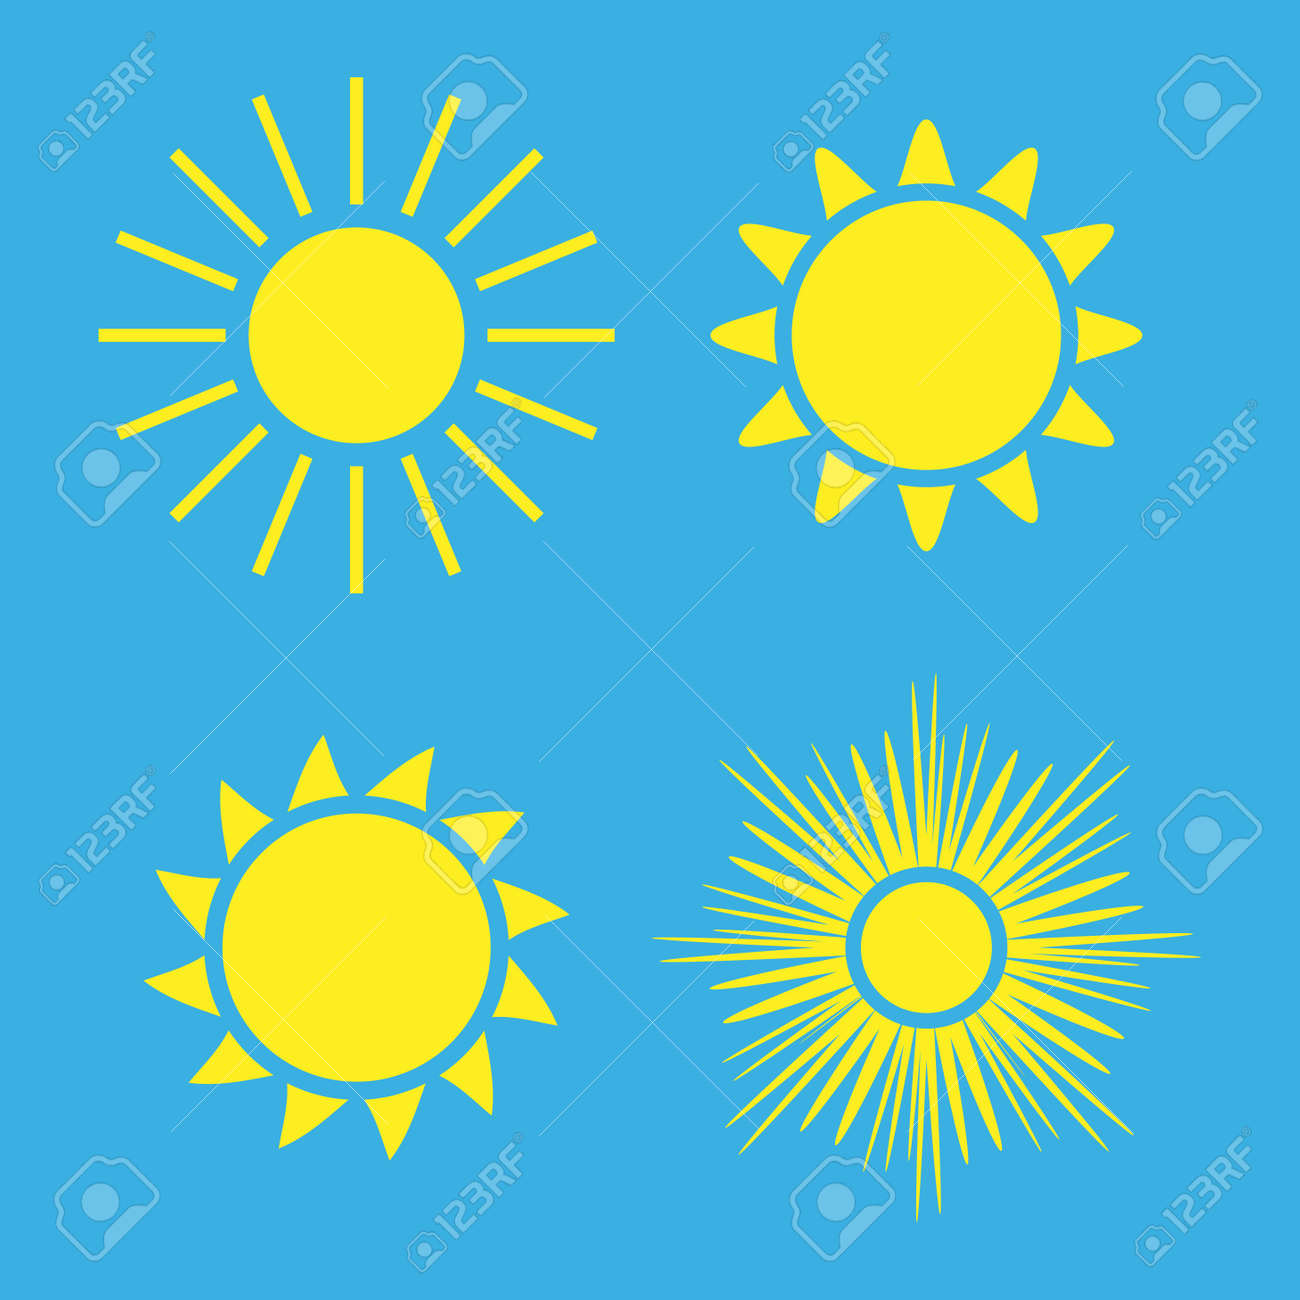 Sun icons set. Collection light yellow signs with sunbeam. Design elements, isolated on blue background. Symbol of sunrise, heat, sunny and sunset, morning, sunlight. Flat style. Illustration. Stock Photo - 73497087